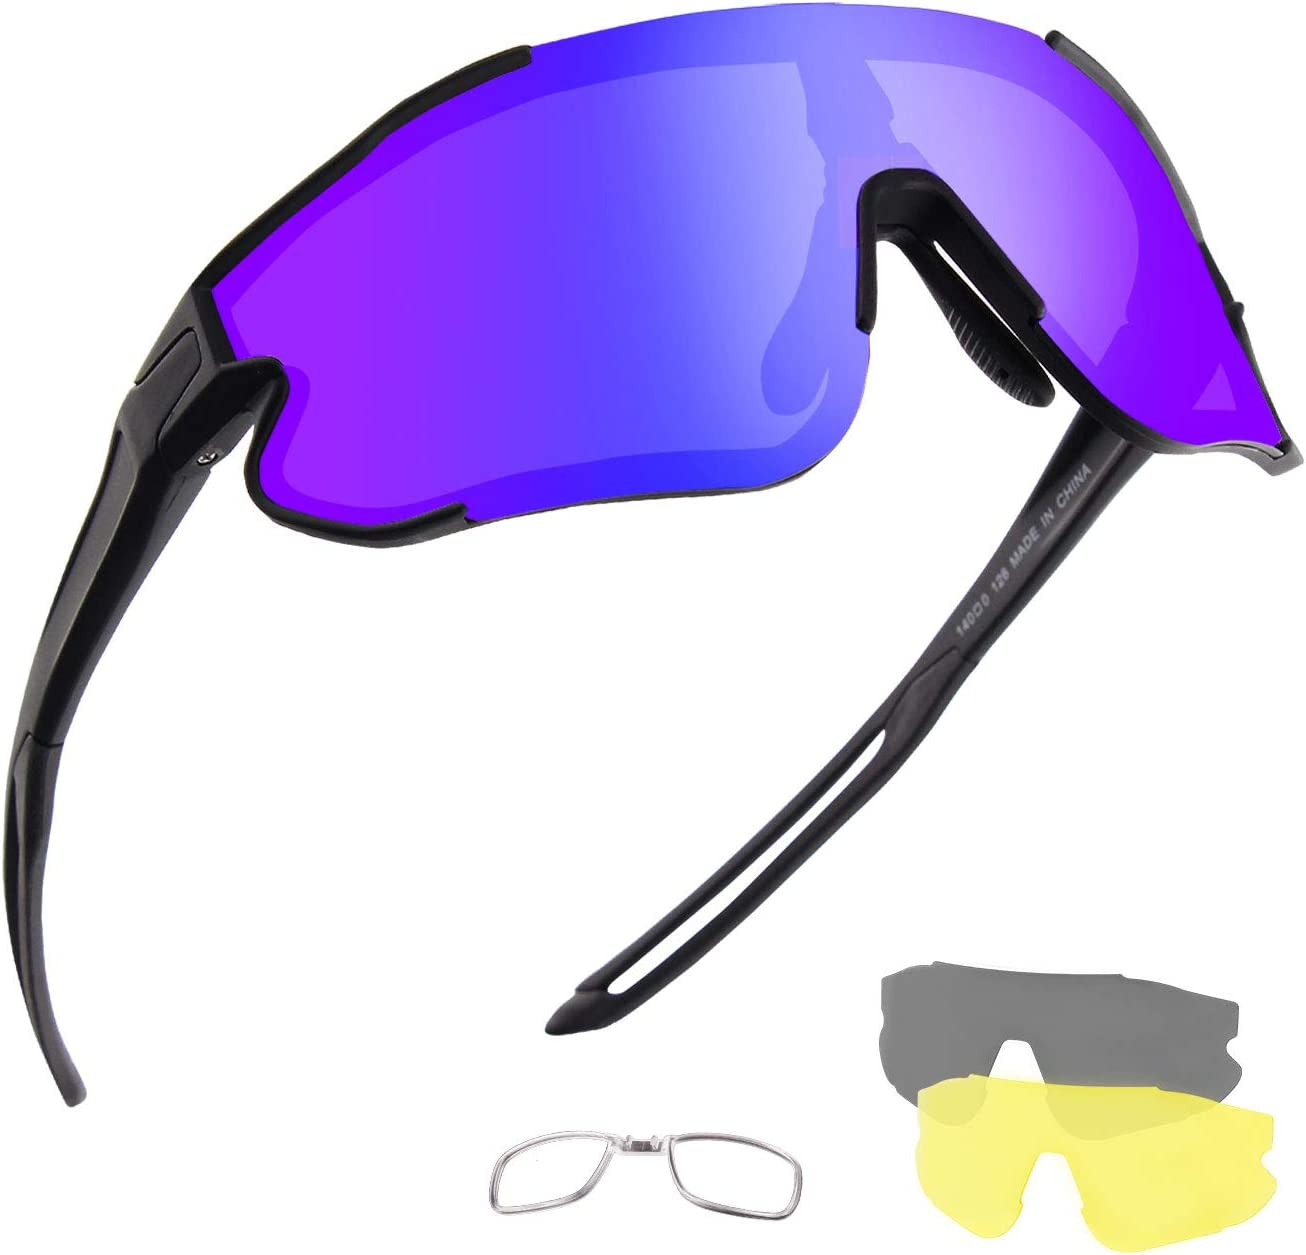 OULAIQI Polarized Sports Sunglasses Cycling Sunglasses for Men Women with 3 Interchangeable Lenses Baseball Glasses